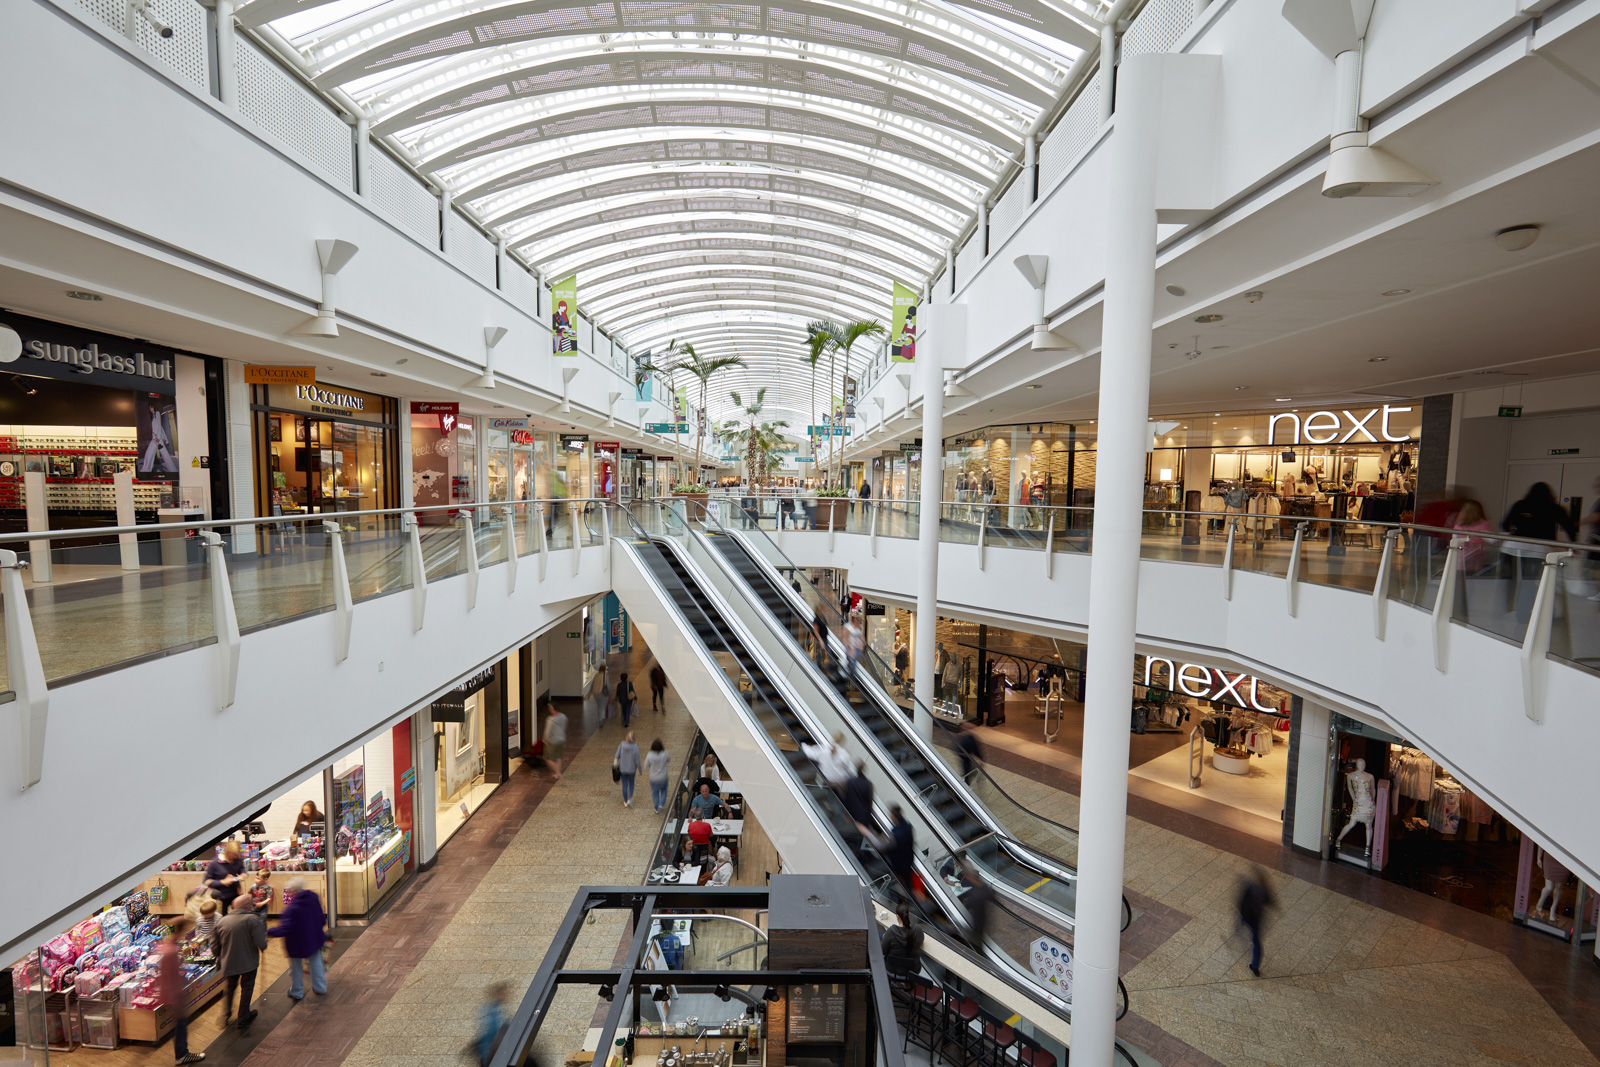 THE_MALL_ARCHITECTURE_039.jpg